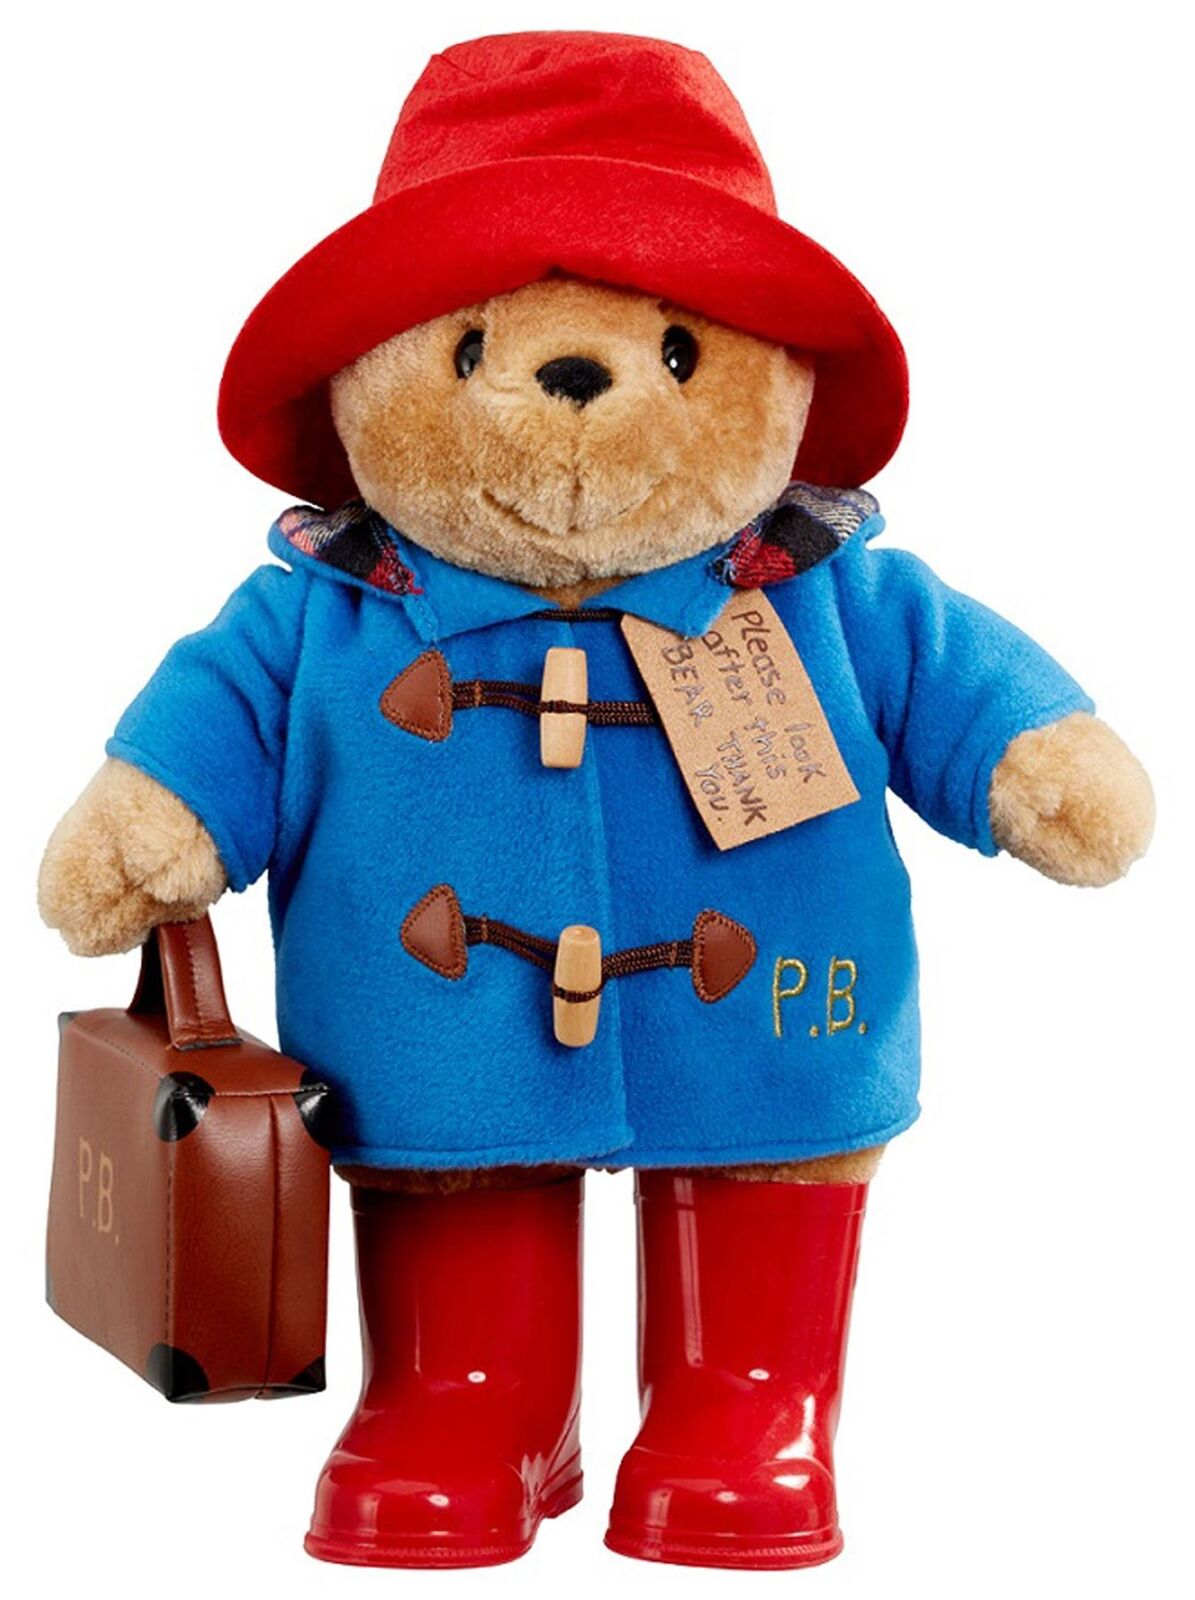 Rainbow Designs LARGE CLASSIC PADDINGTON BEAR WITH Stiefel AND SUITCASE Toys BN